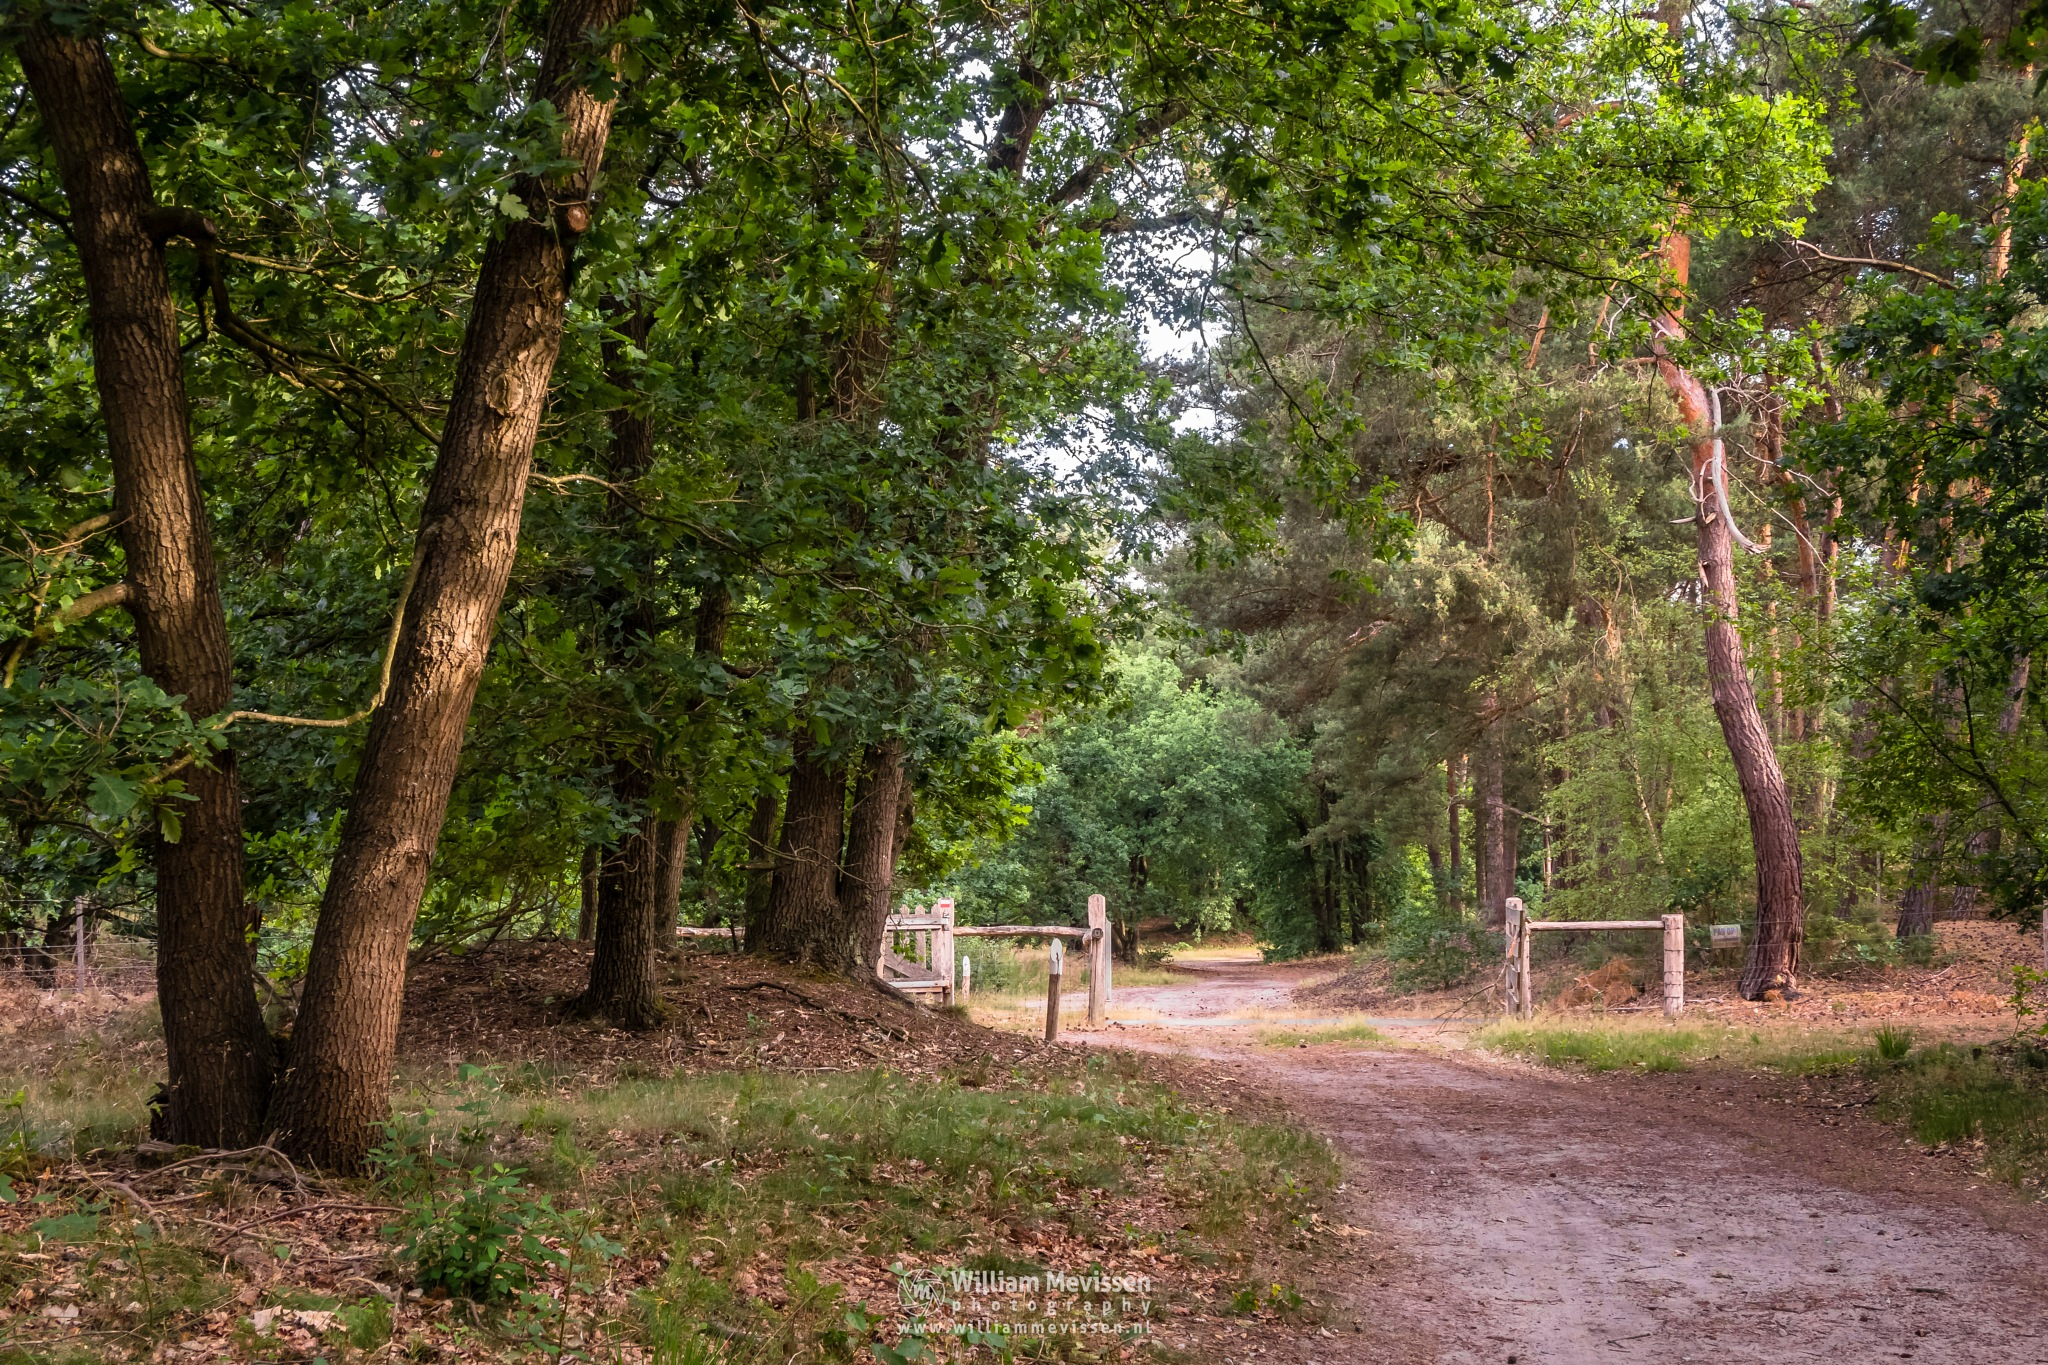 Opened Forest Gate by William Mevissen